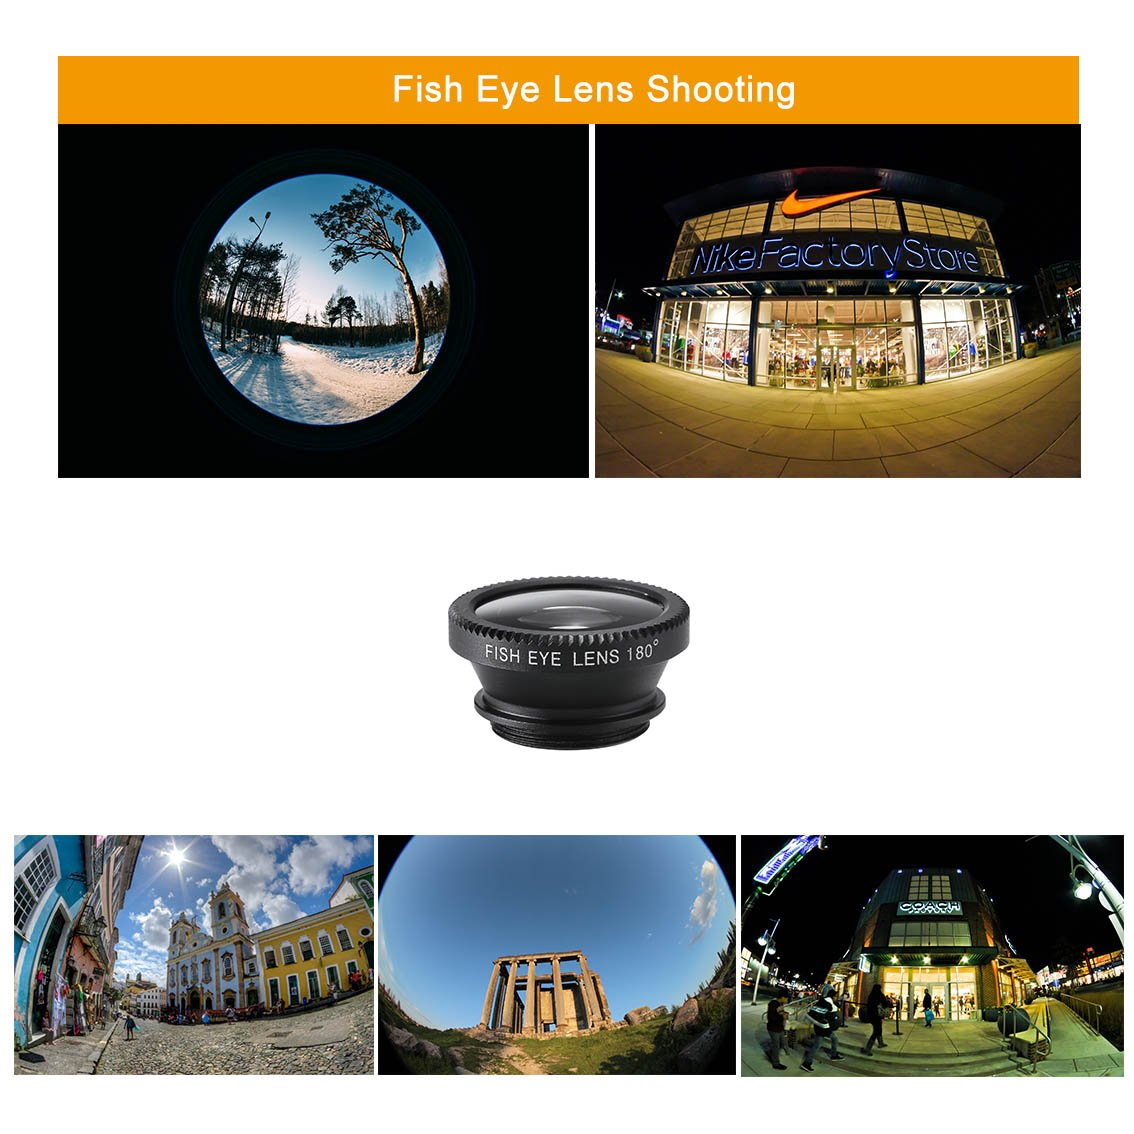 Phone Camera Lens, MSDADA Telephoto Lens Kit, 12X Optical Telescope, Fisheye, Wide Angle and Macro Lens, Retractable Tripod with Bluetooth Shutter for IPhone, Samsung, Most of Smartphones,Tablets by MSDADA (Image #5)